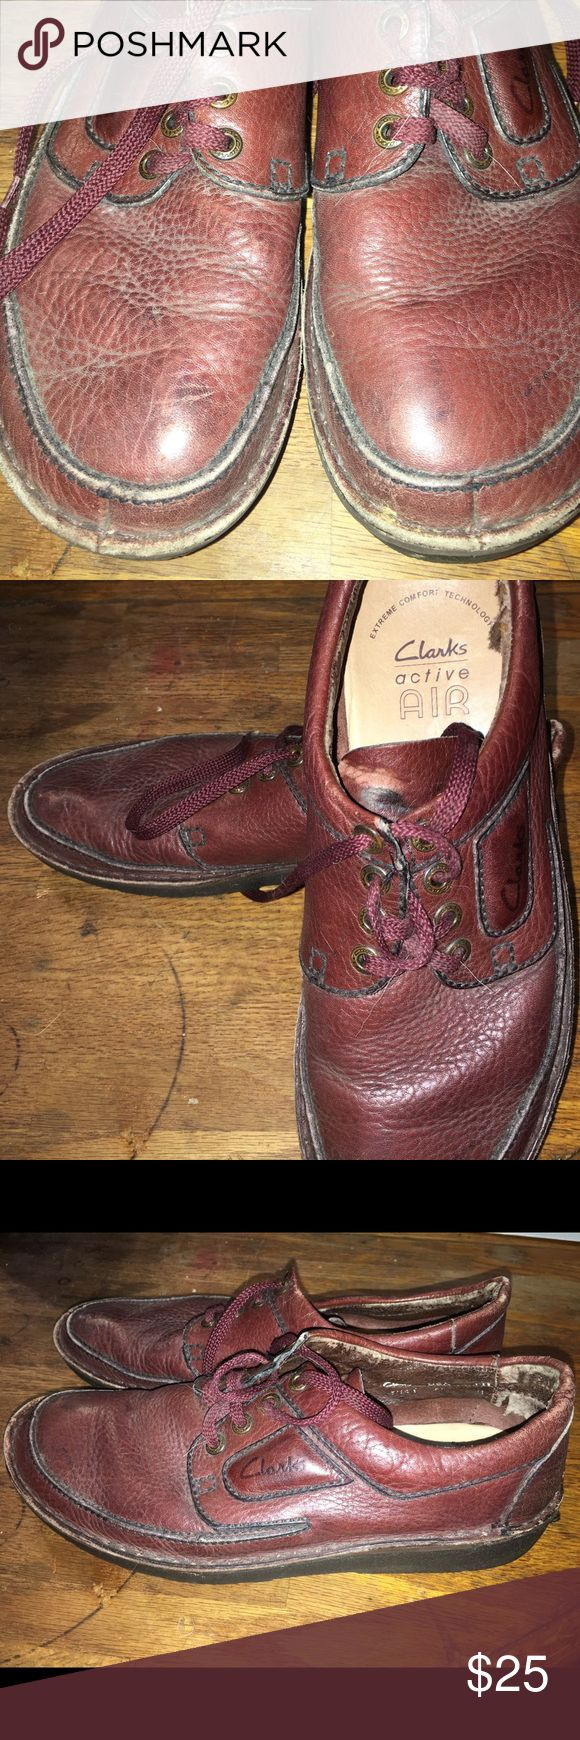 Men's clarks air Used clarks air used very comfortable shoes no noticeable damage on the outside only towards the back inside as you can see in the picture. Clarks Shoes Loafers & Slip-Ons